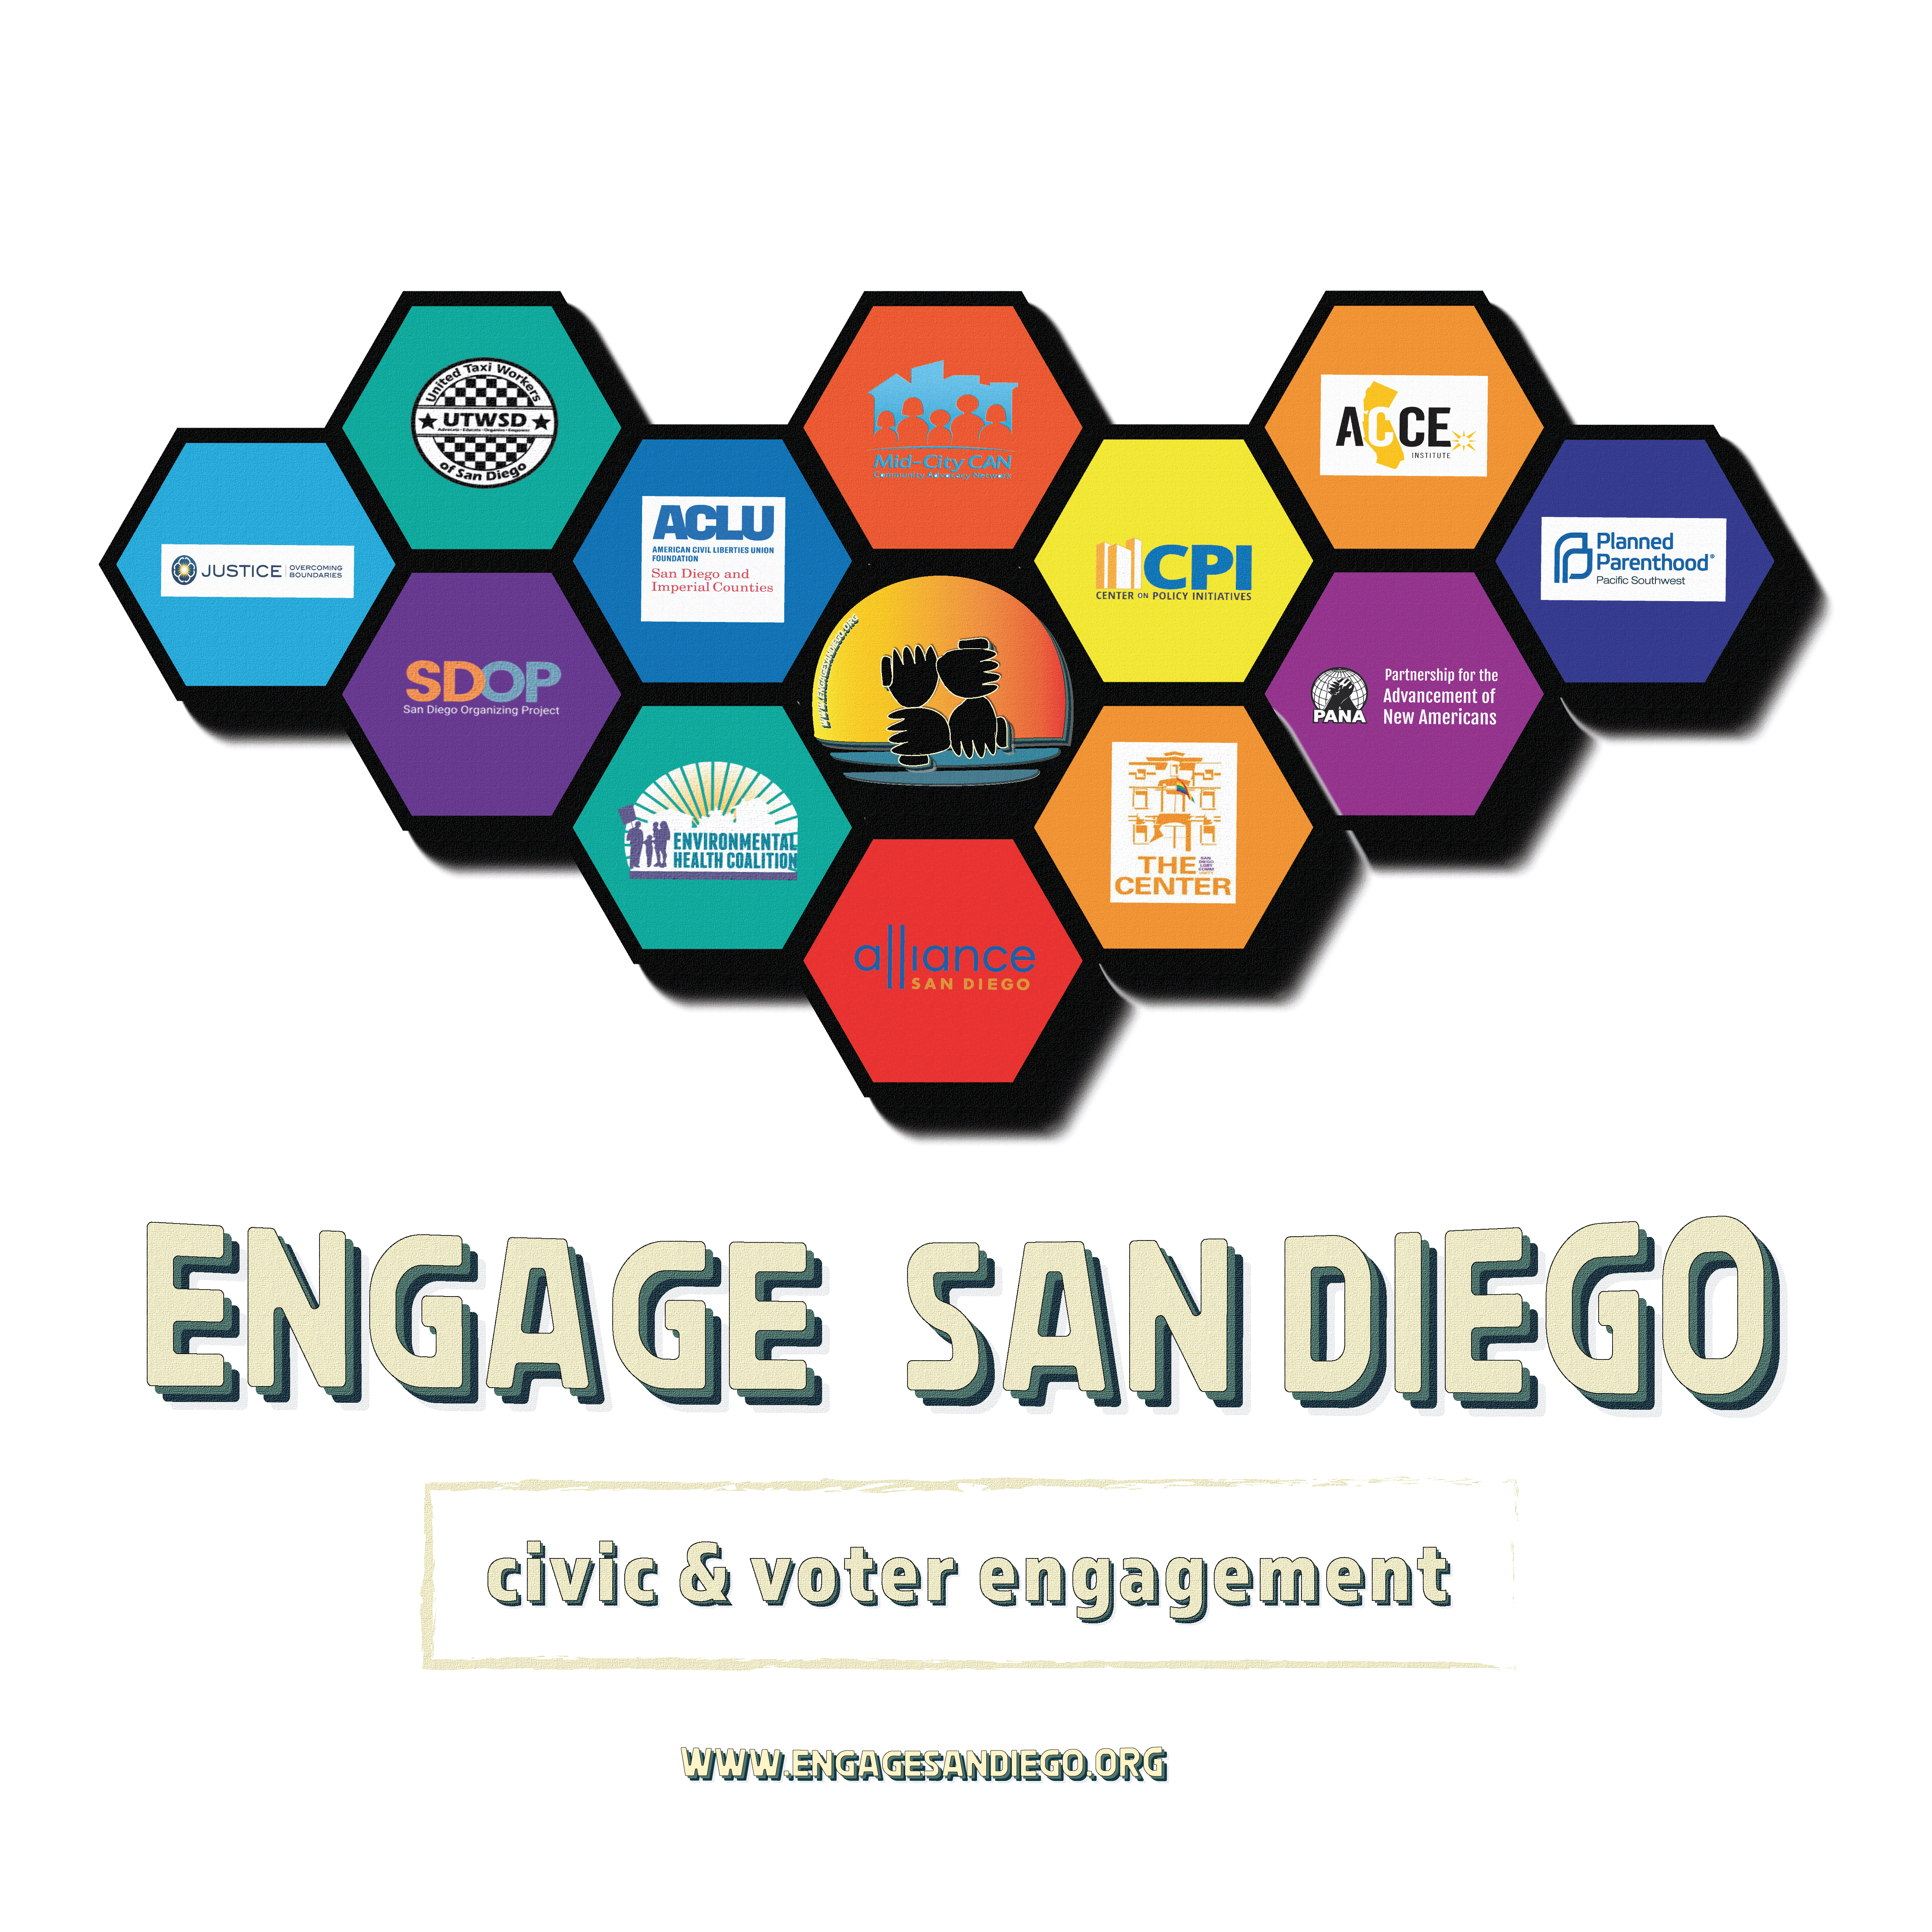 EngageSanDiego_logo_color_blkltr_05302018_2x.png